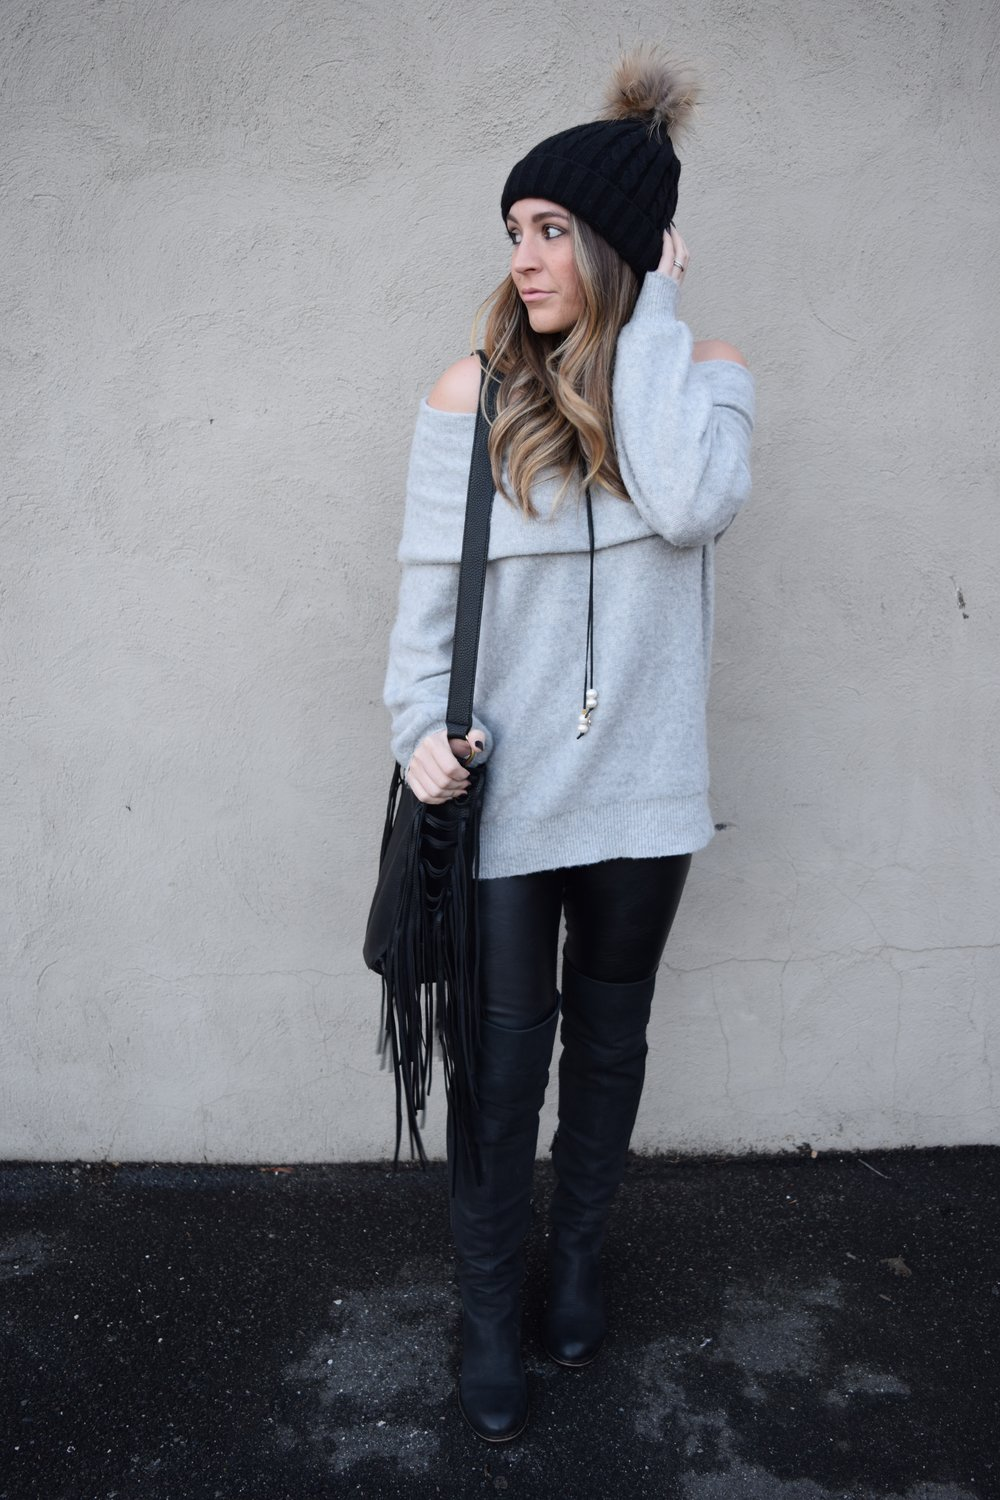 winter outfit idea // pinebarrenbeauty.com